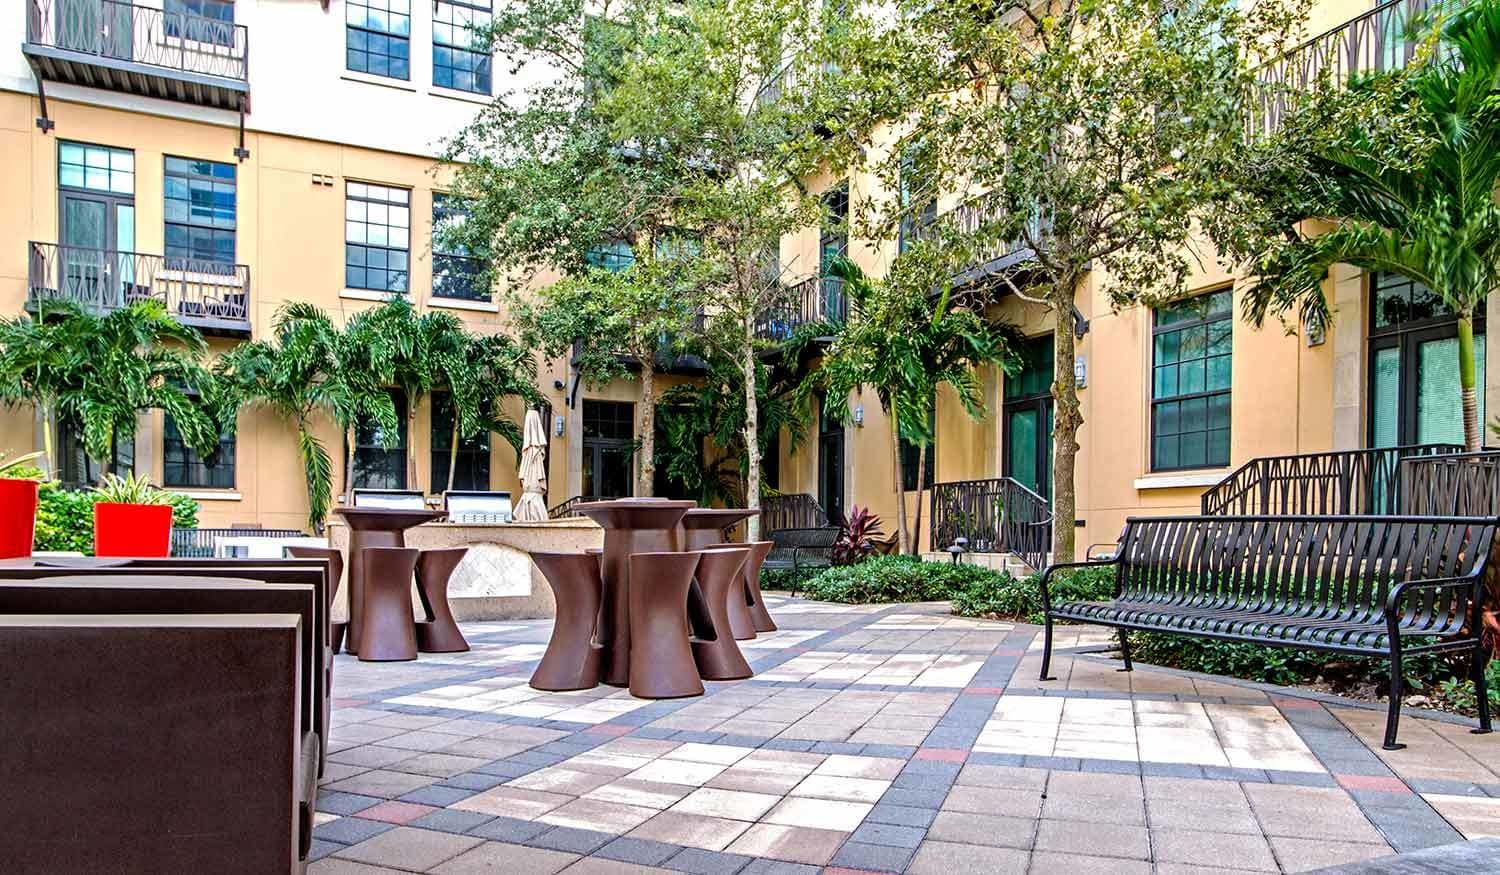 Areas to entertain friends at The Exchange Lofts in Fort Lauderdale, Florida.